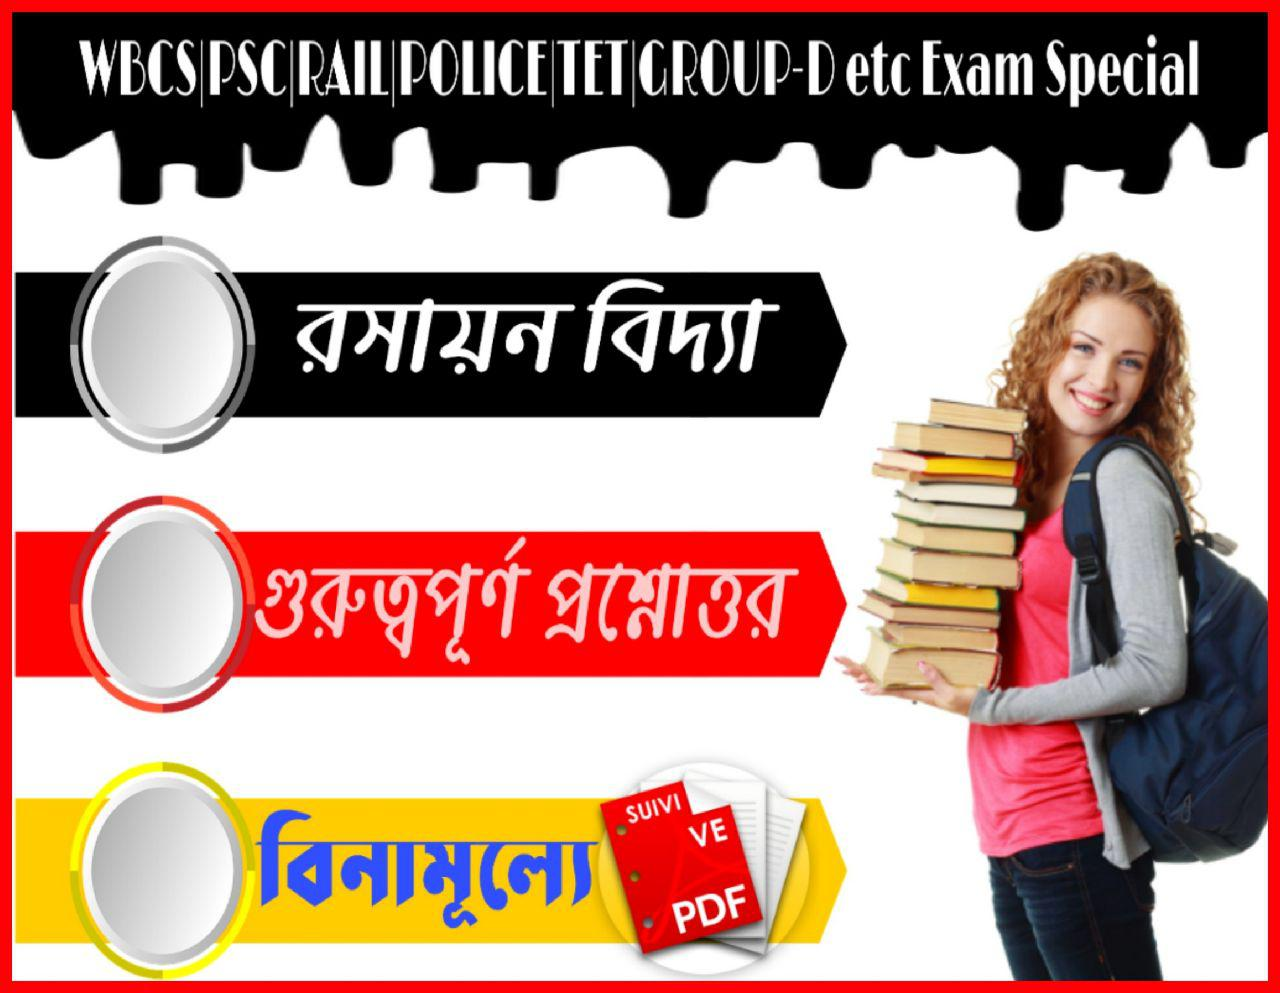 General Science Questions Answers In Bengali Pdf | Download General Science Book In Bengali Pdf | Download Bengali General Science Book Pdf | Ntpc, Icds, Group D, Psc General Science Bengali